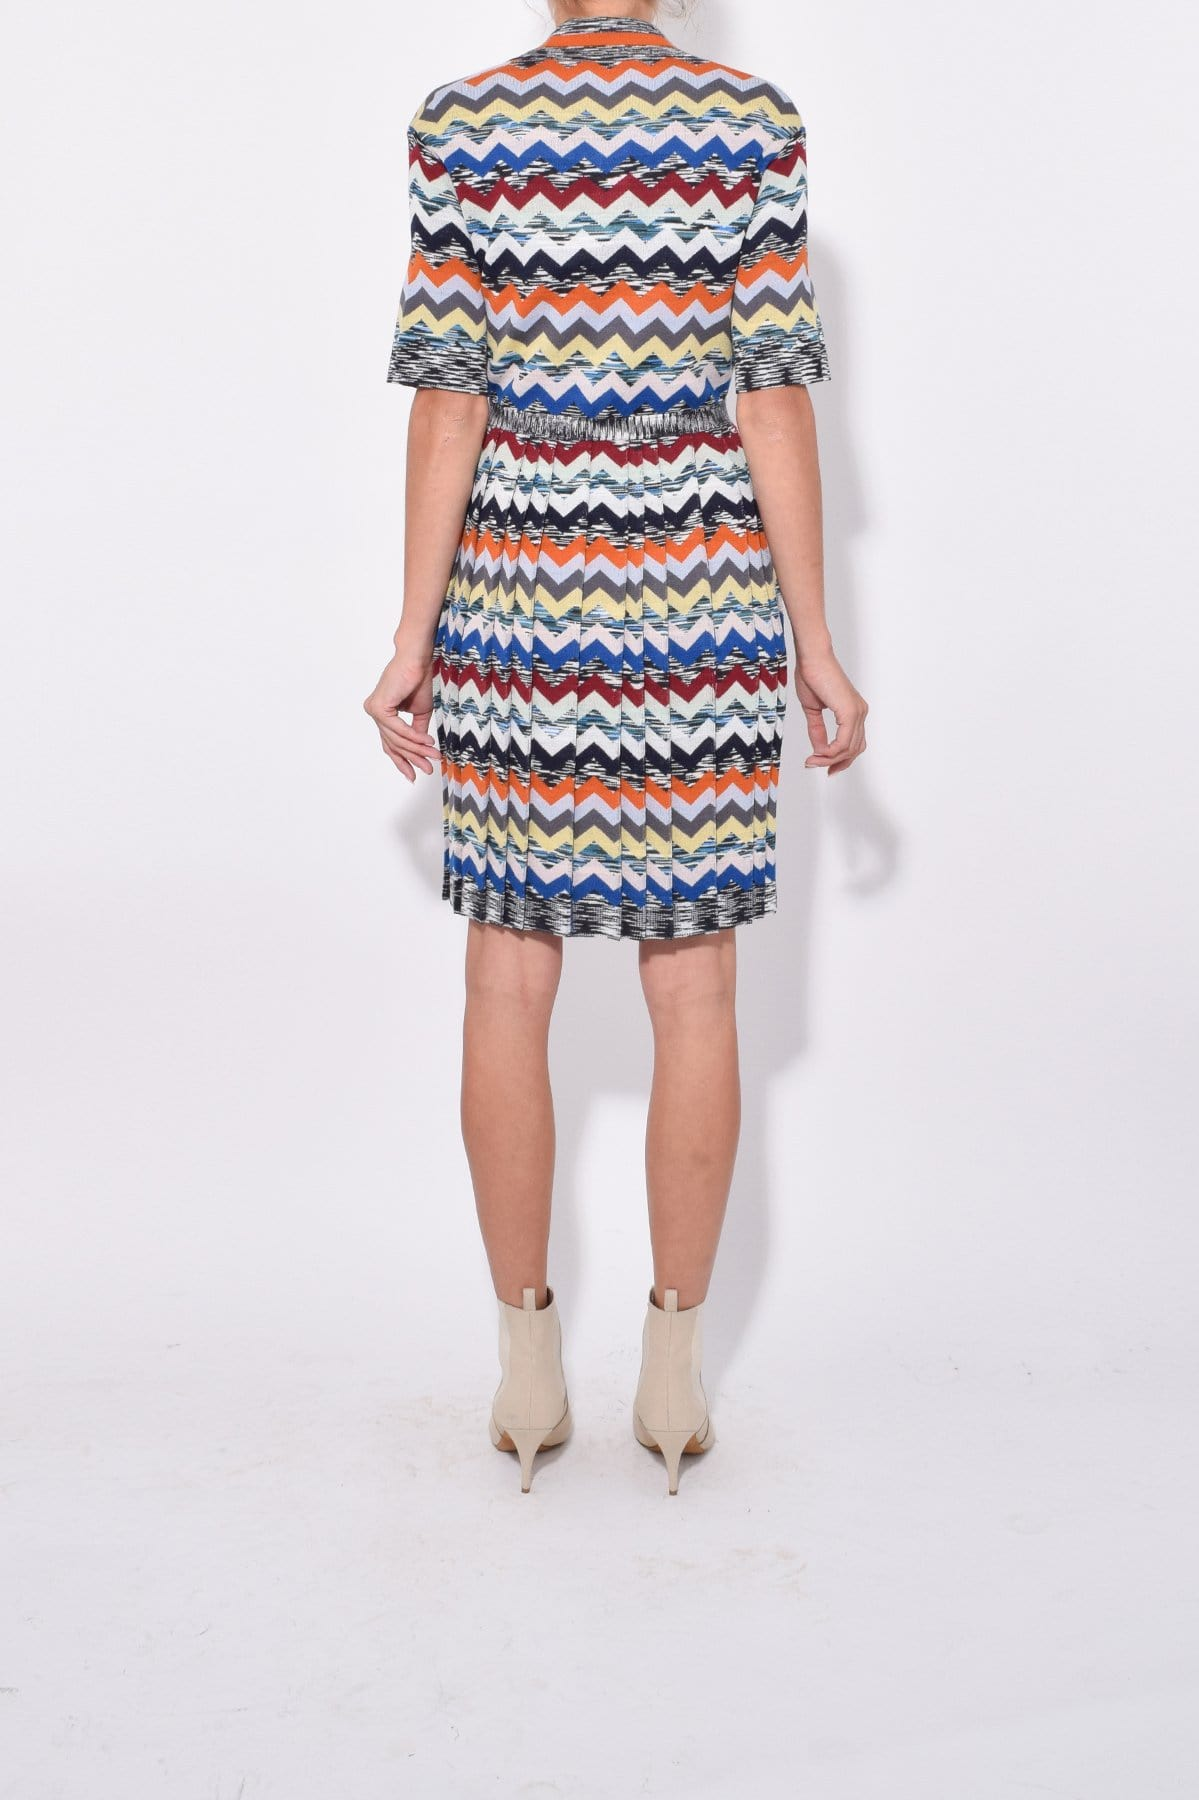 Sweater Zig Zag Print Short Sleeves Elbow Length Sleeves Dress